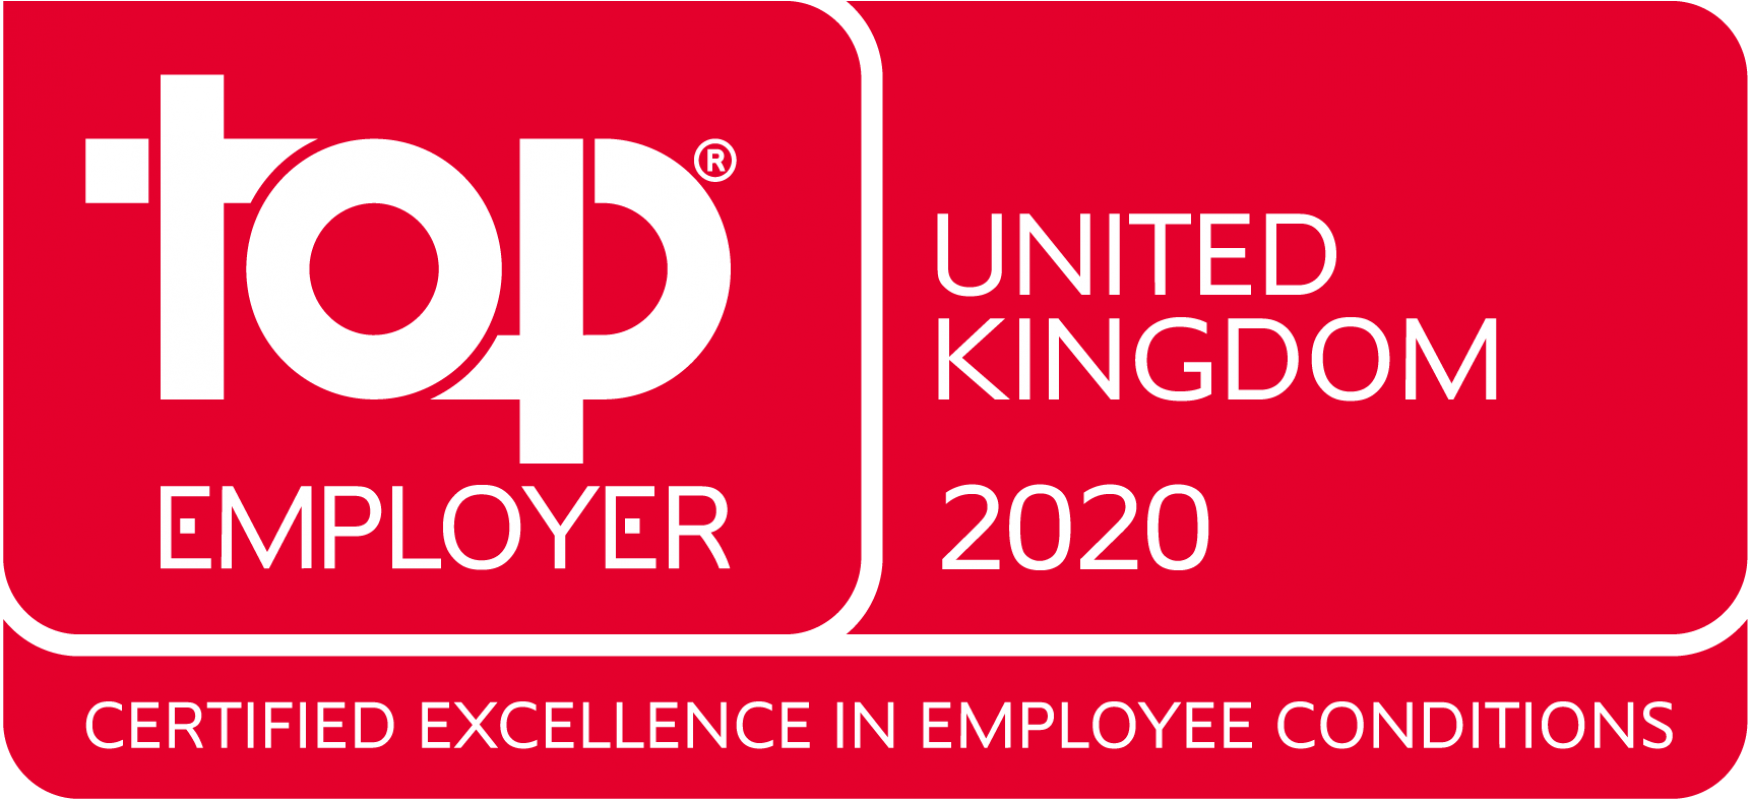 top employer uk 2020 logo